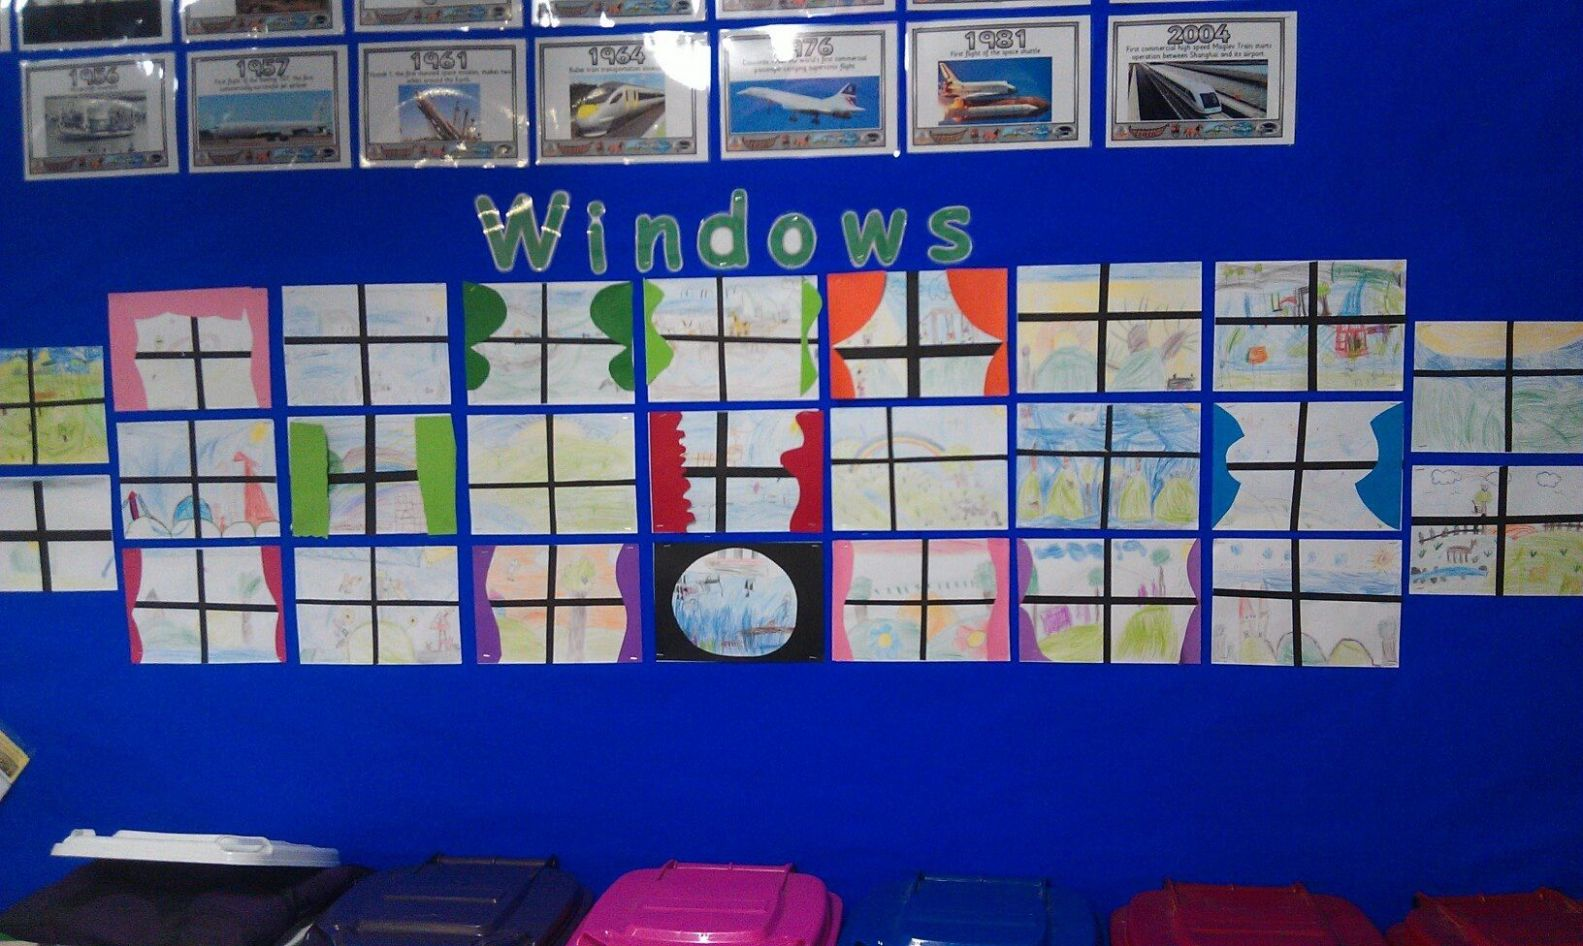 Windows art inspired by Jeannie Baker book Window | Homeschool art ..